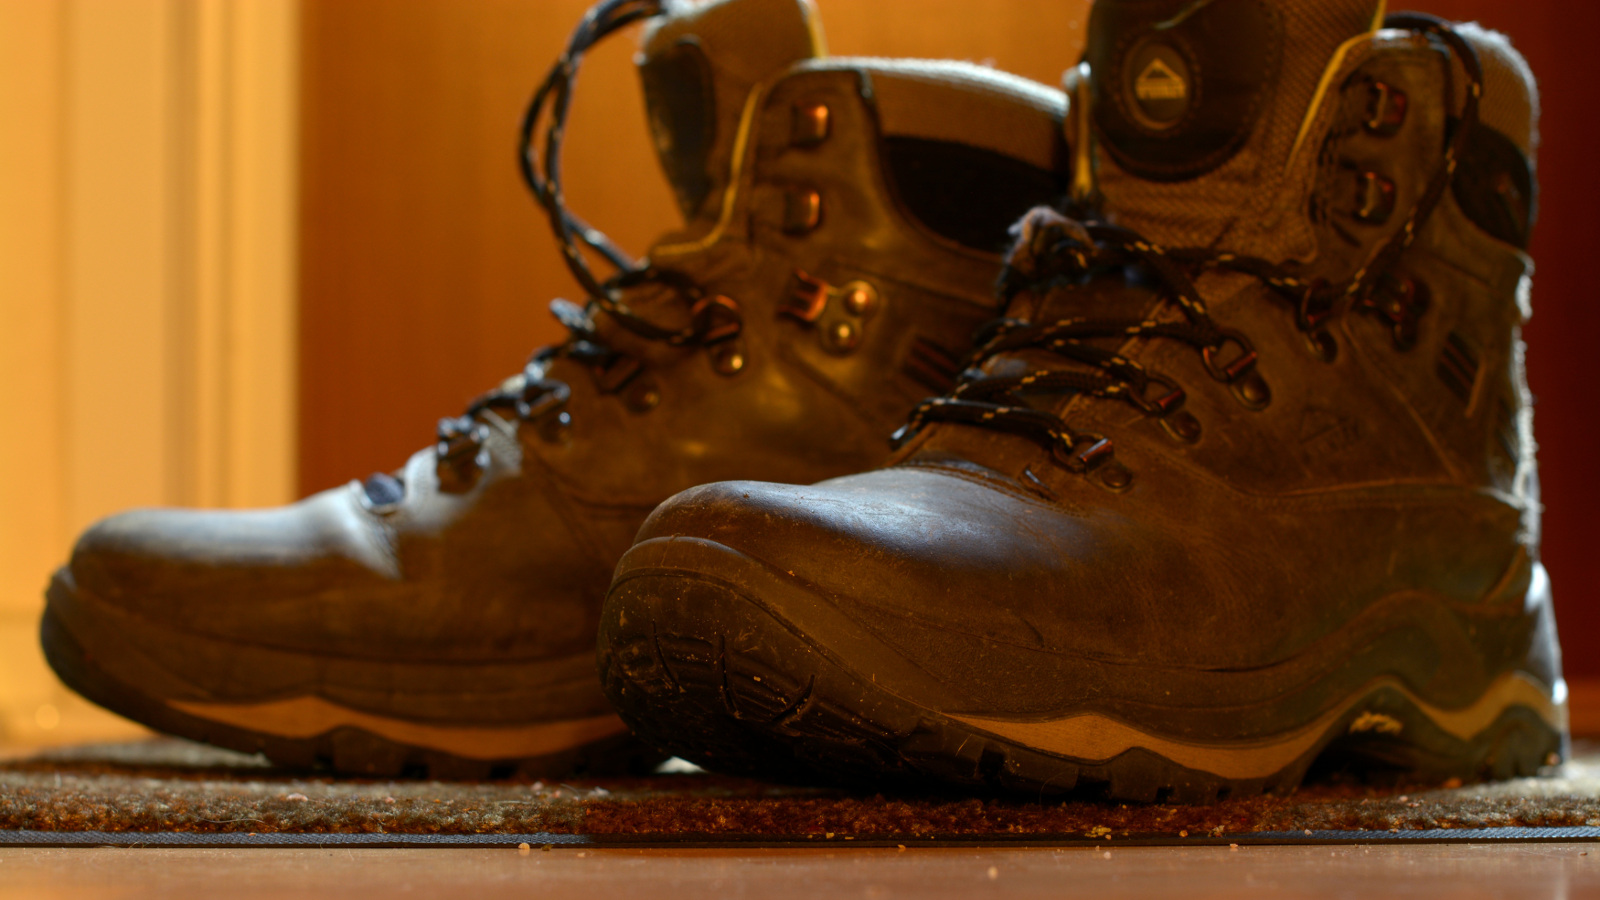 My boots, backlit with a flashlight